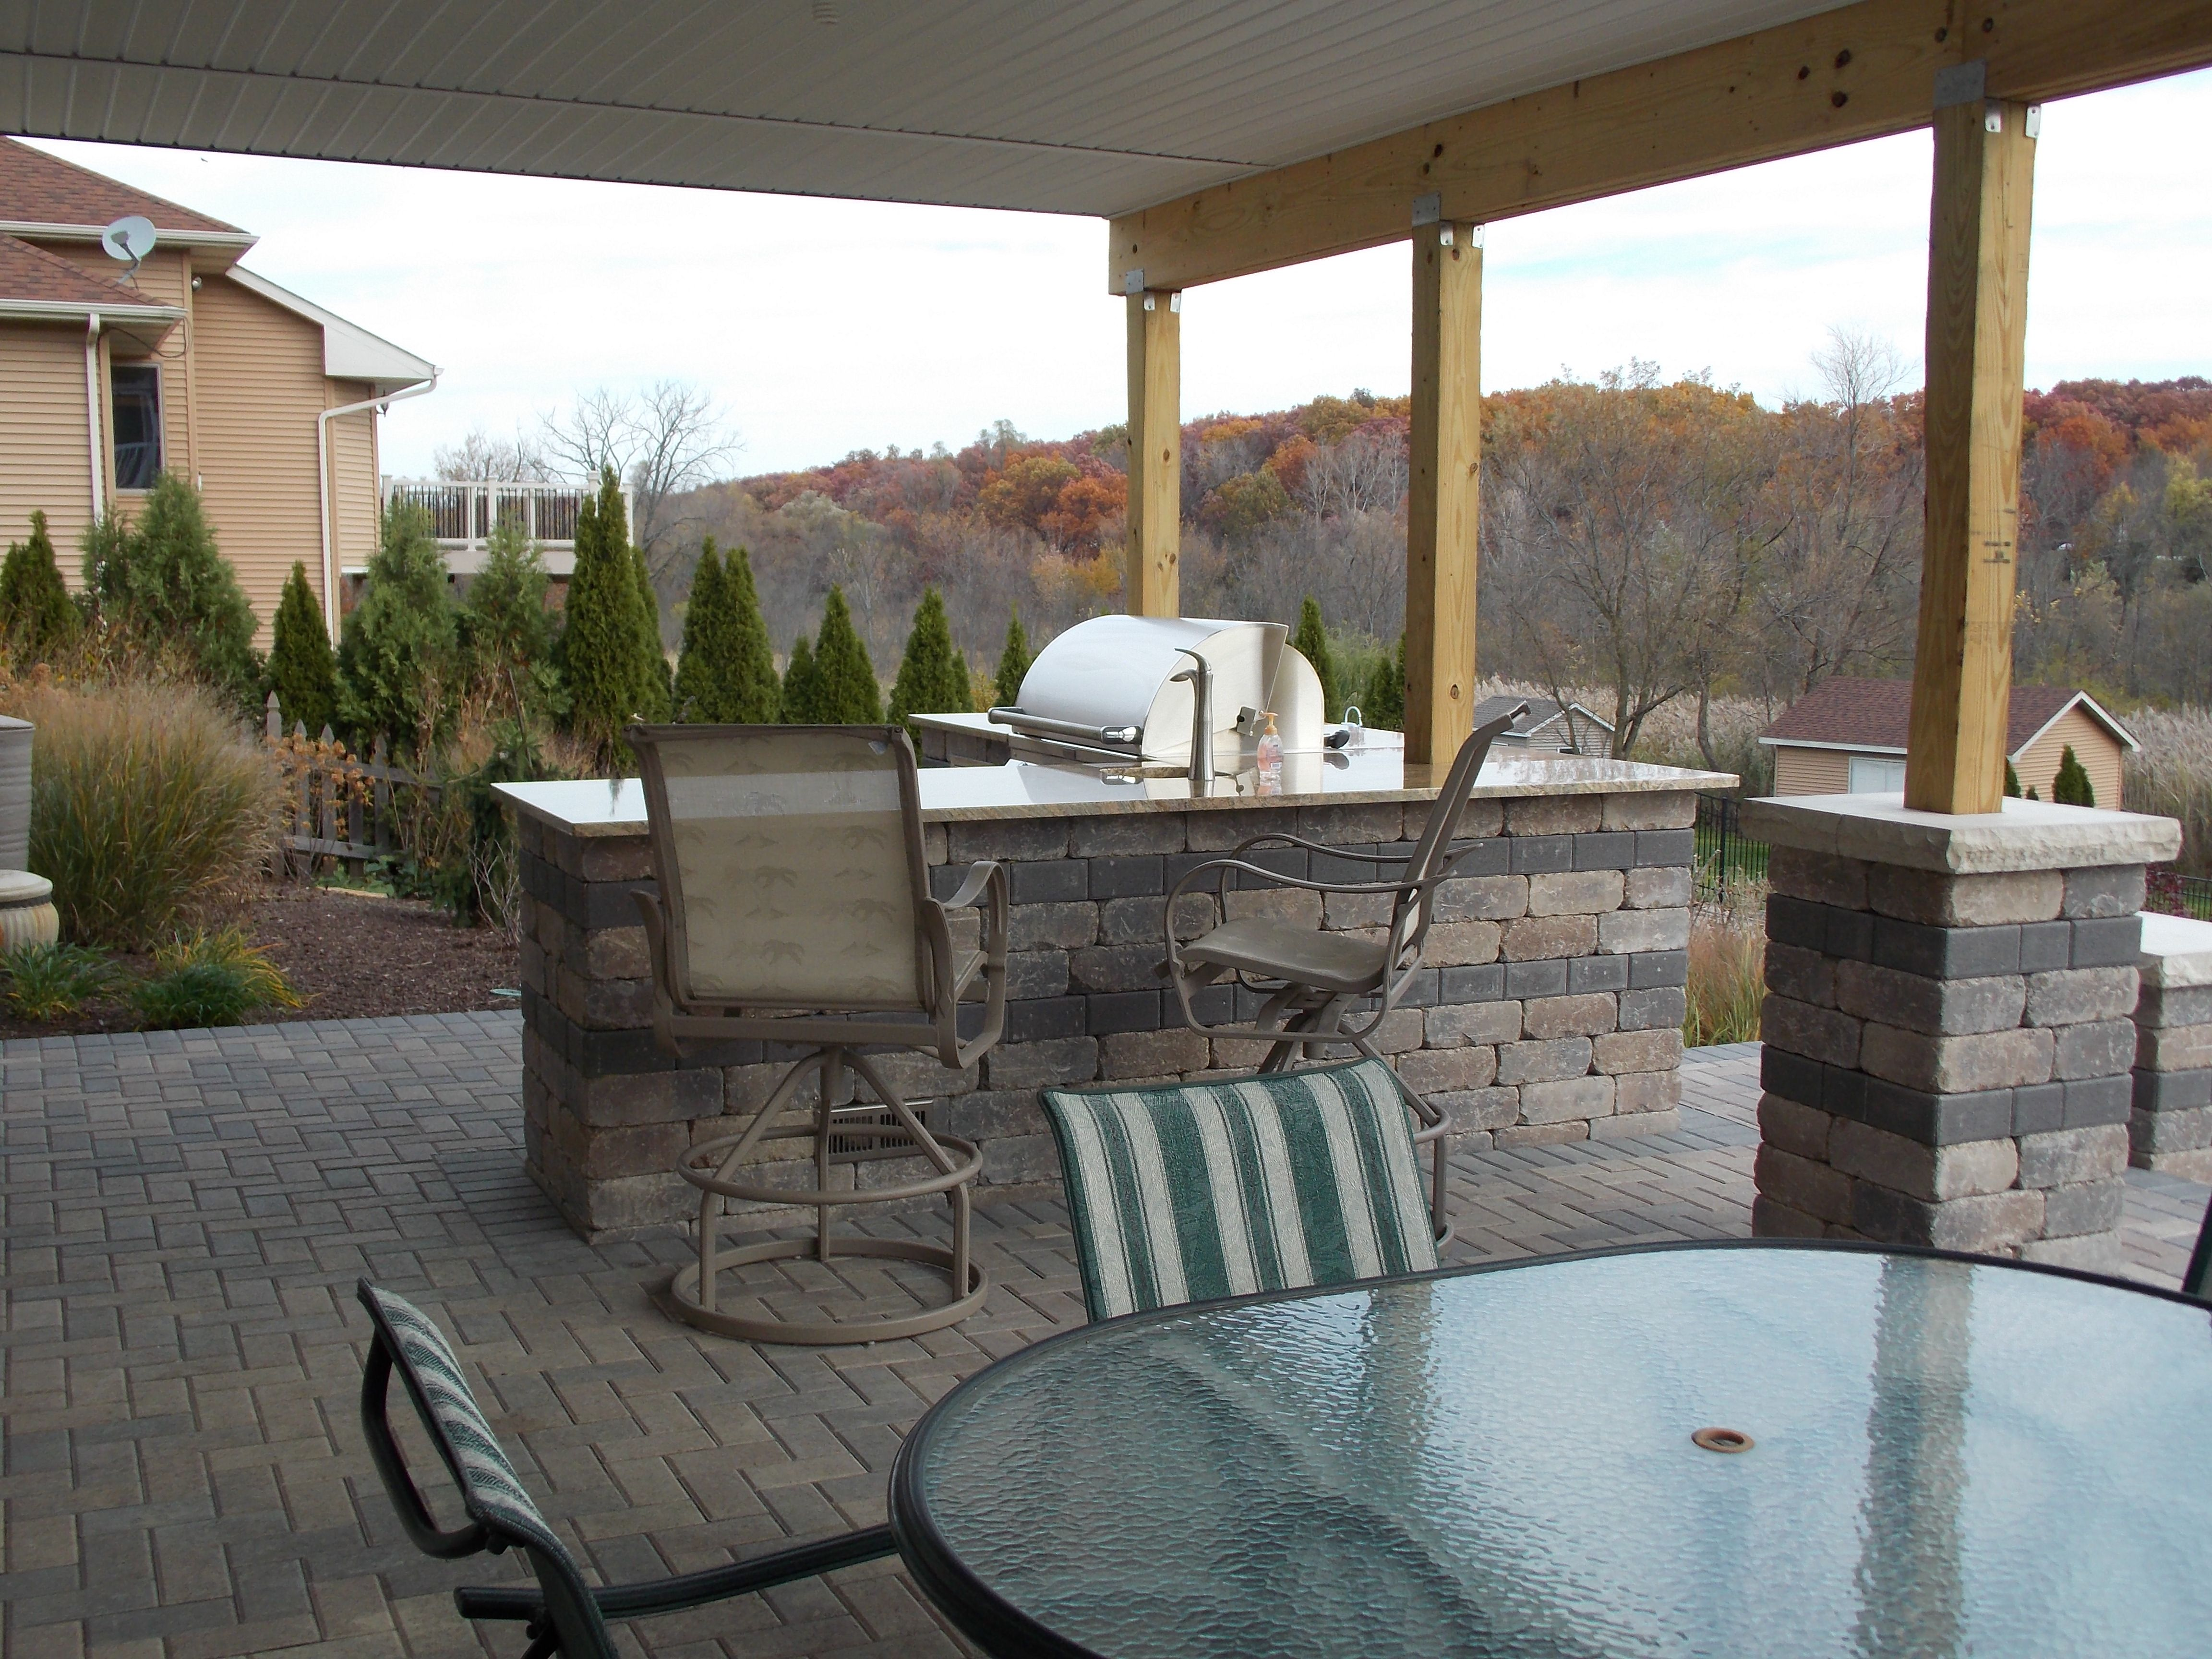 Outdoor Kitchen | Small patio spaces, Outdoor furniture ... on Outdoor Living Spaces Nw id=14362